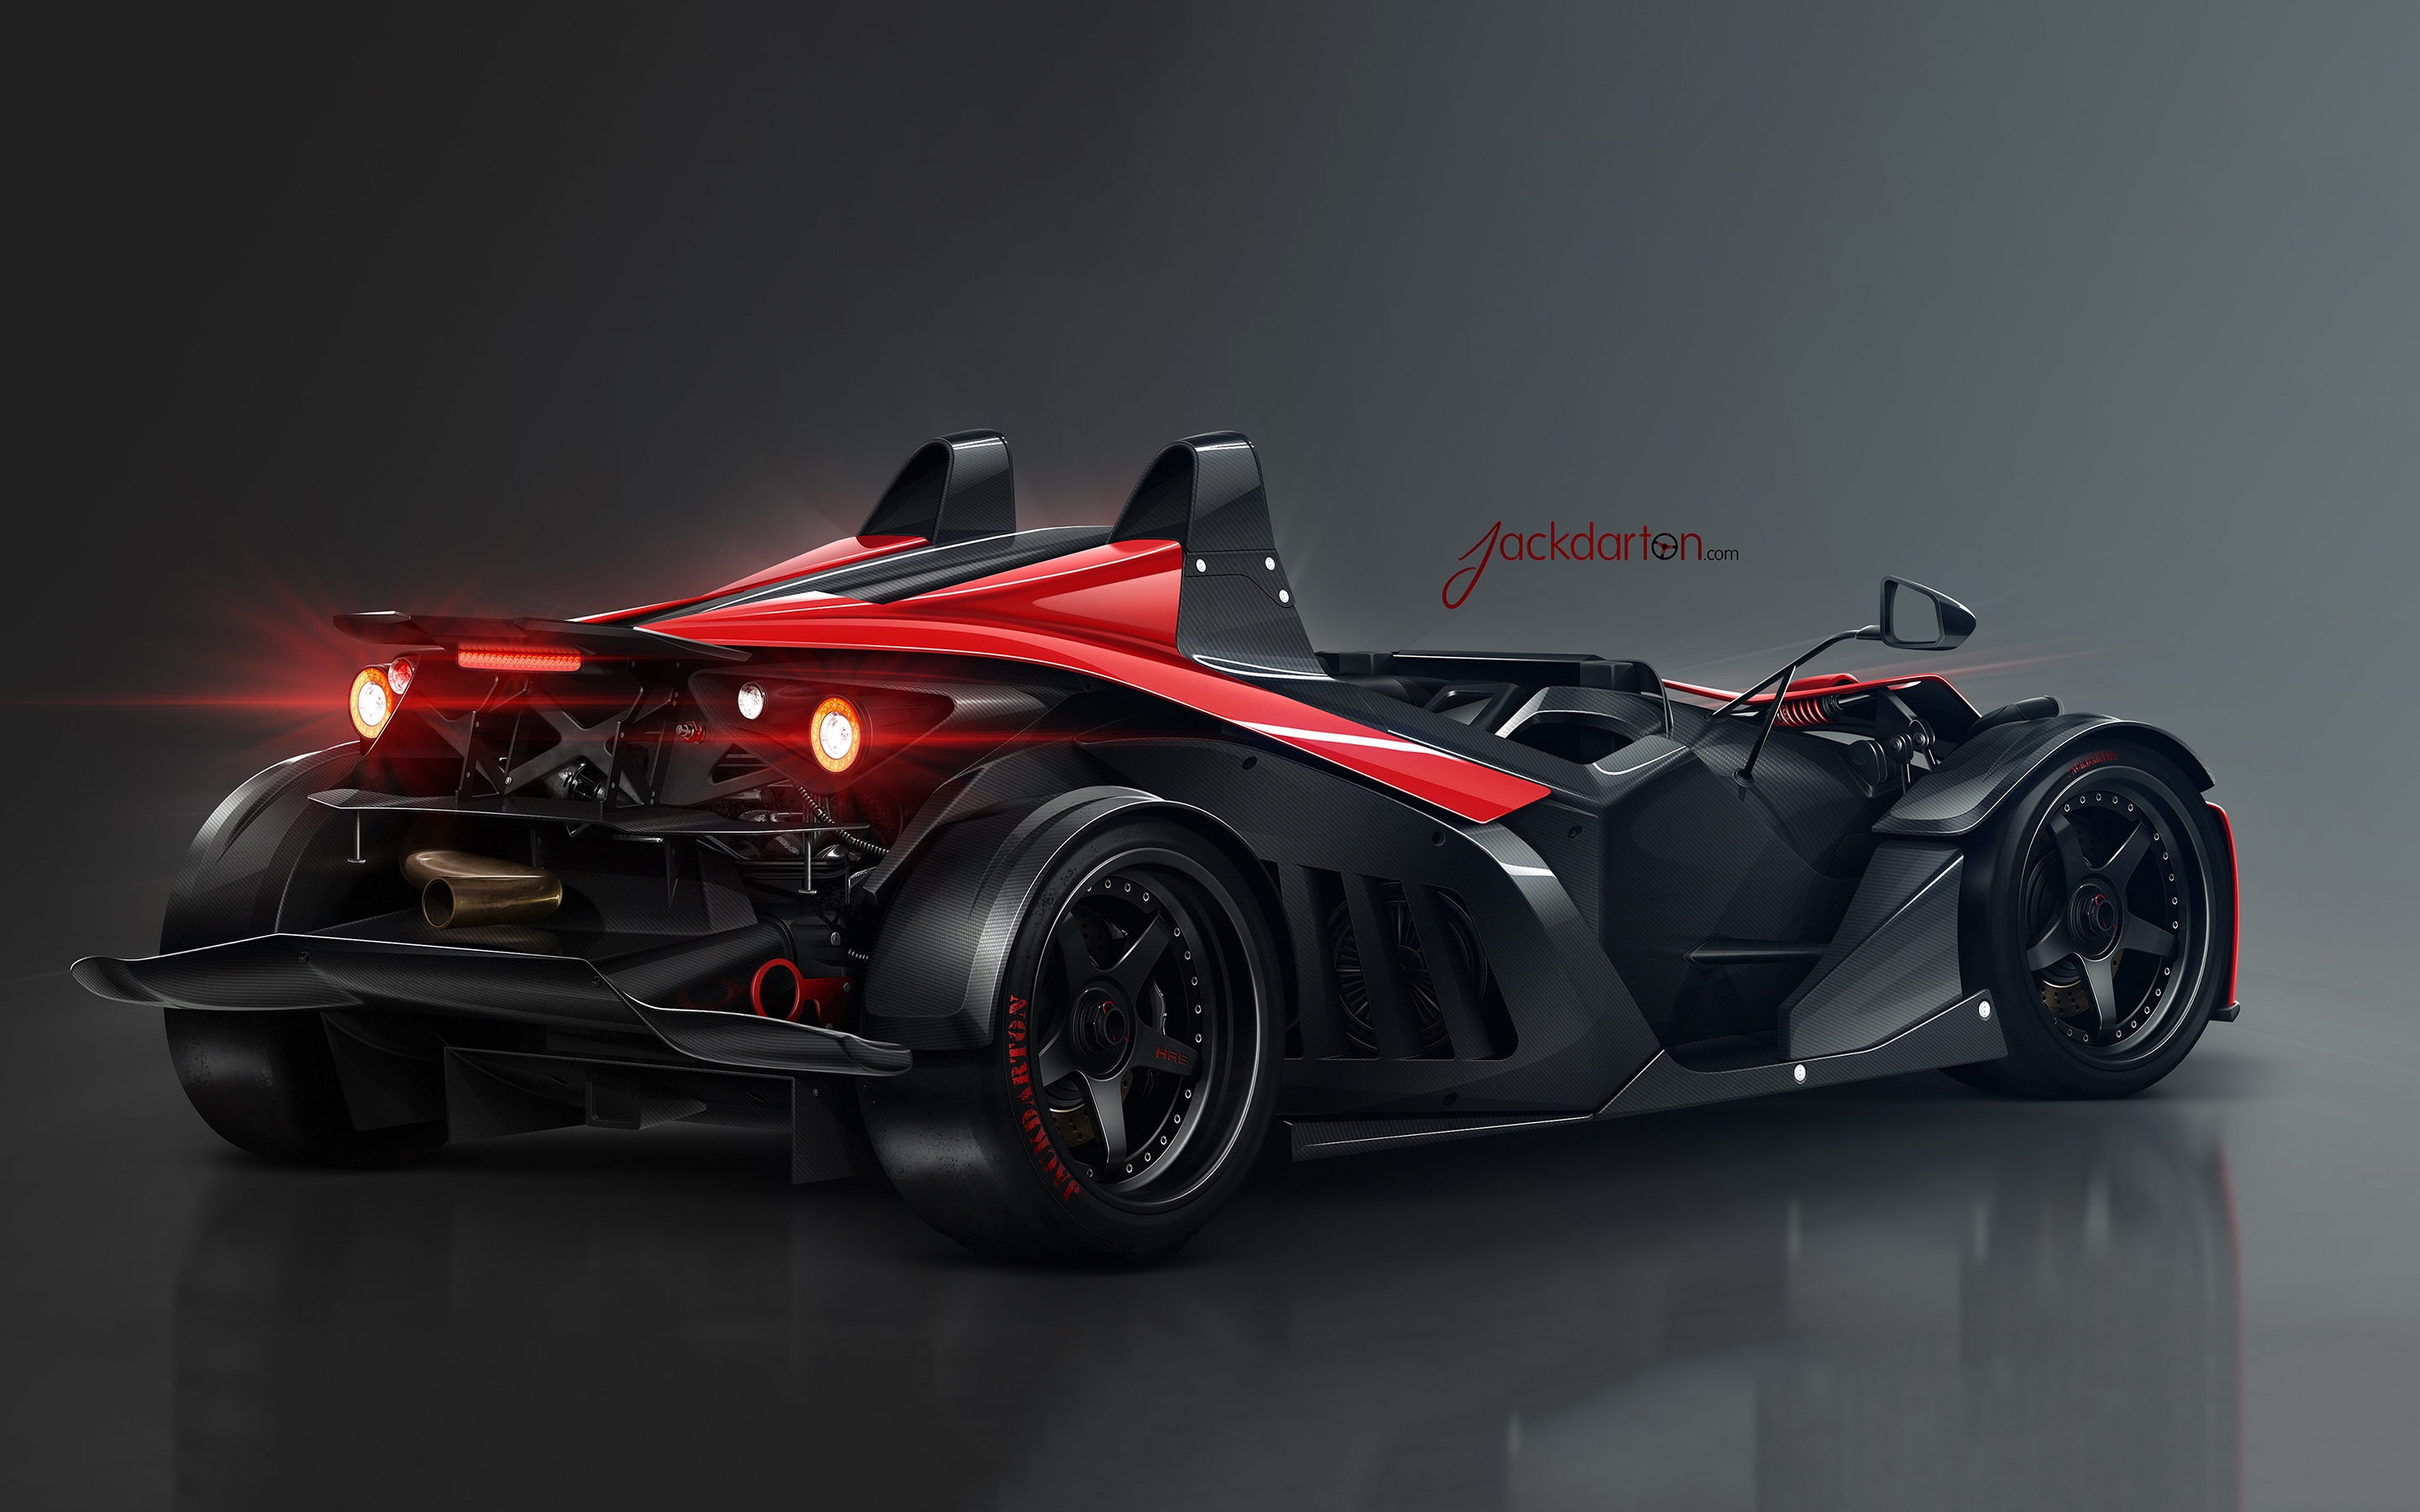 Ktm X Bow HD Wallpaper